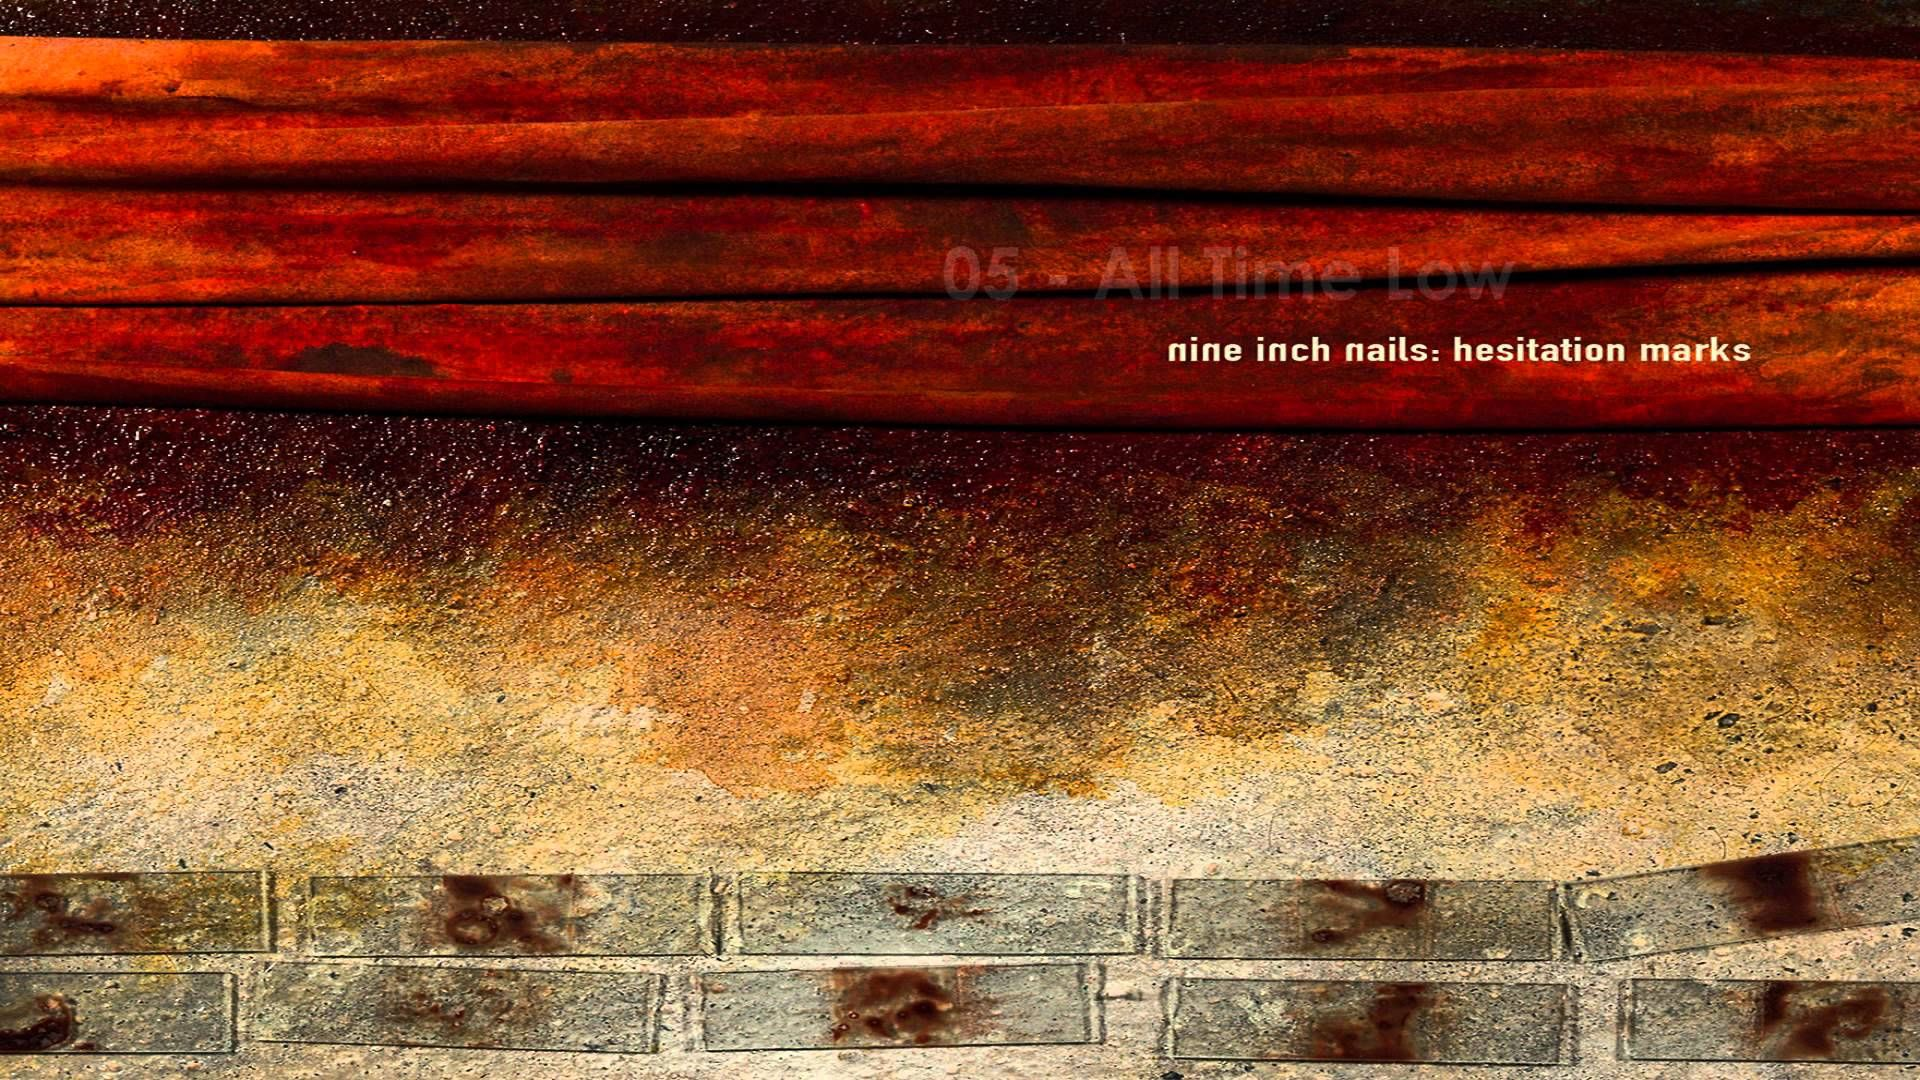 Nine Inch Nails - Hesitation Marks (Official) FULL ALBUM ...